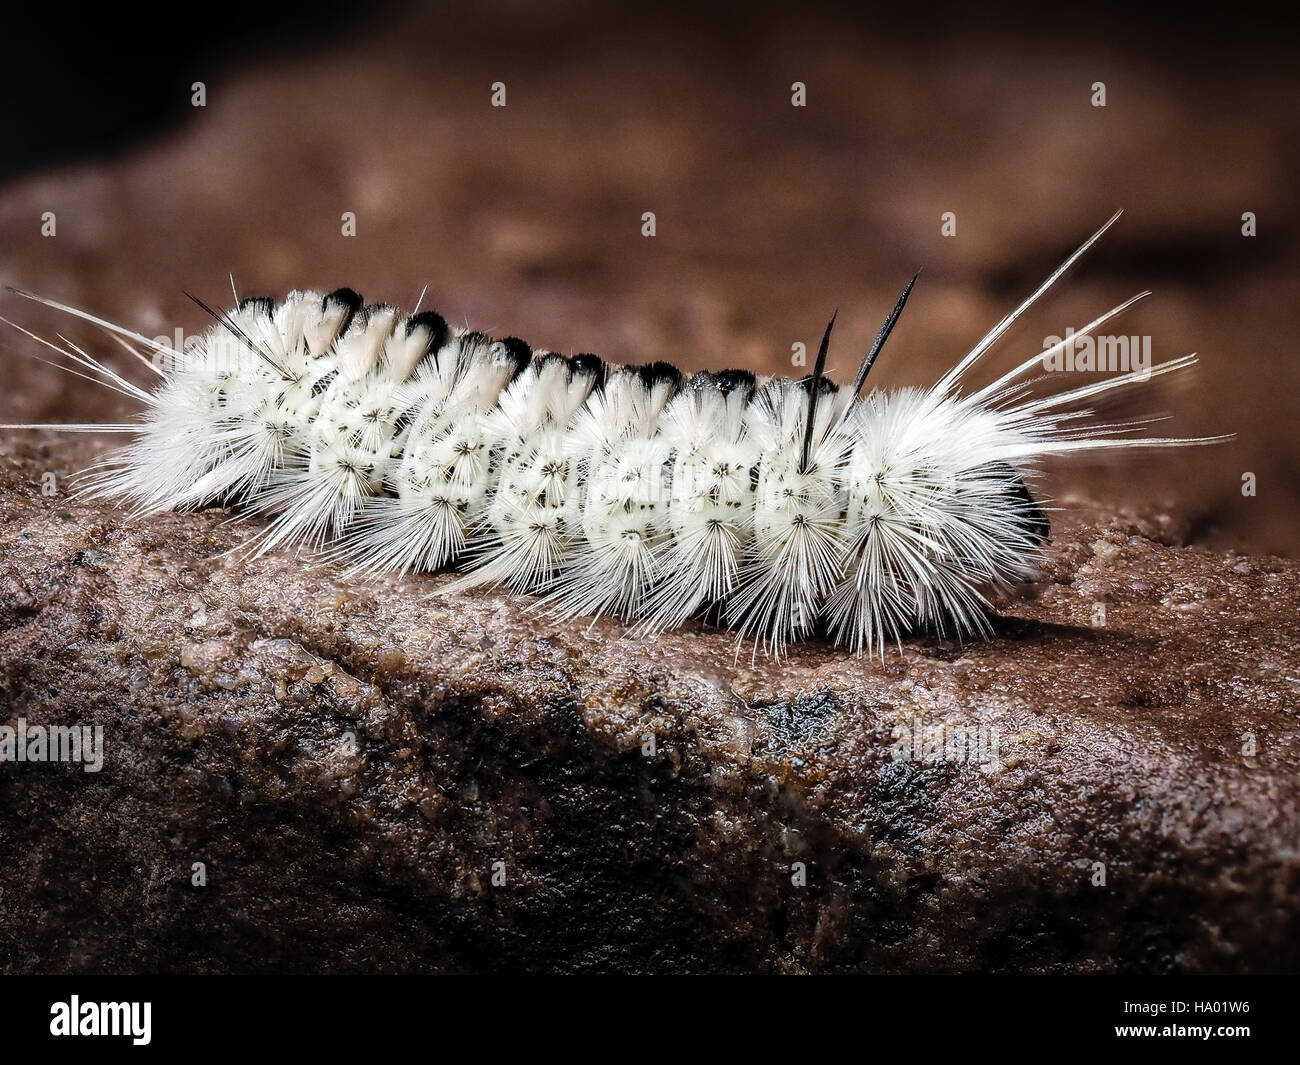 Poisonous white Hickory Tussock Moth Caterpillar on wet rock white spikes - Stock Image